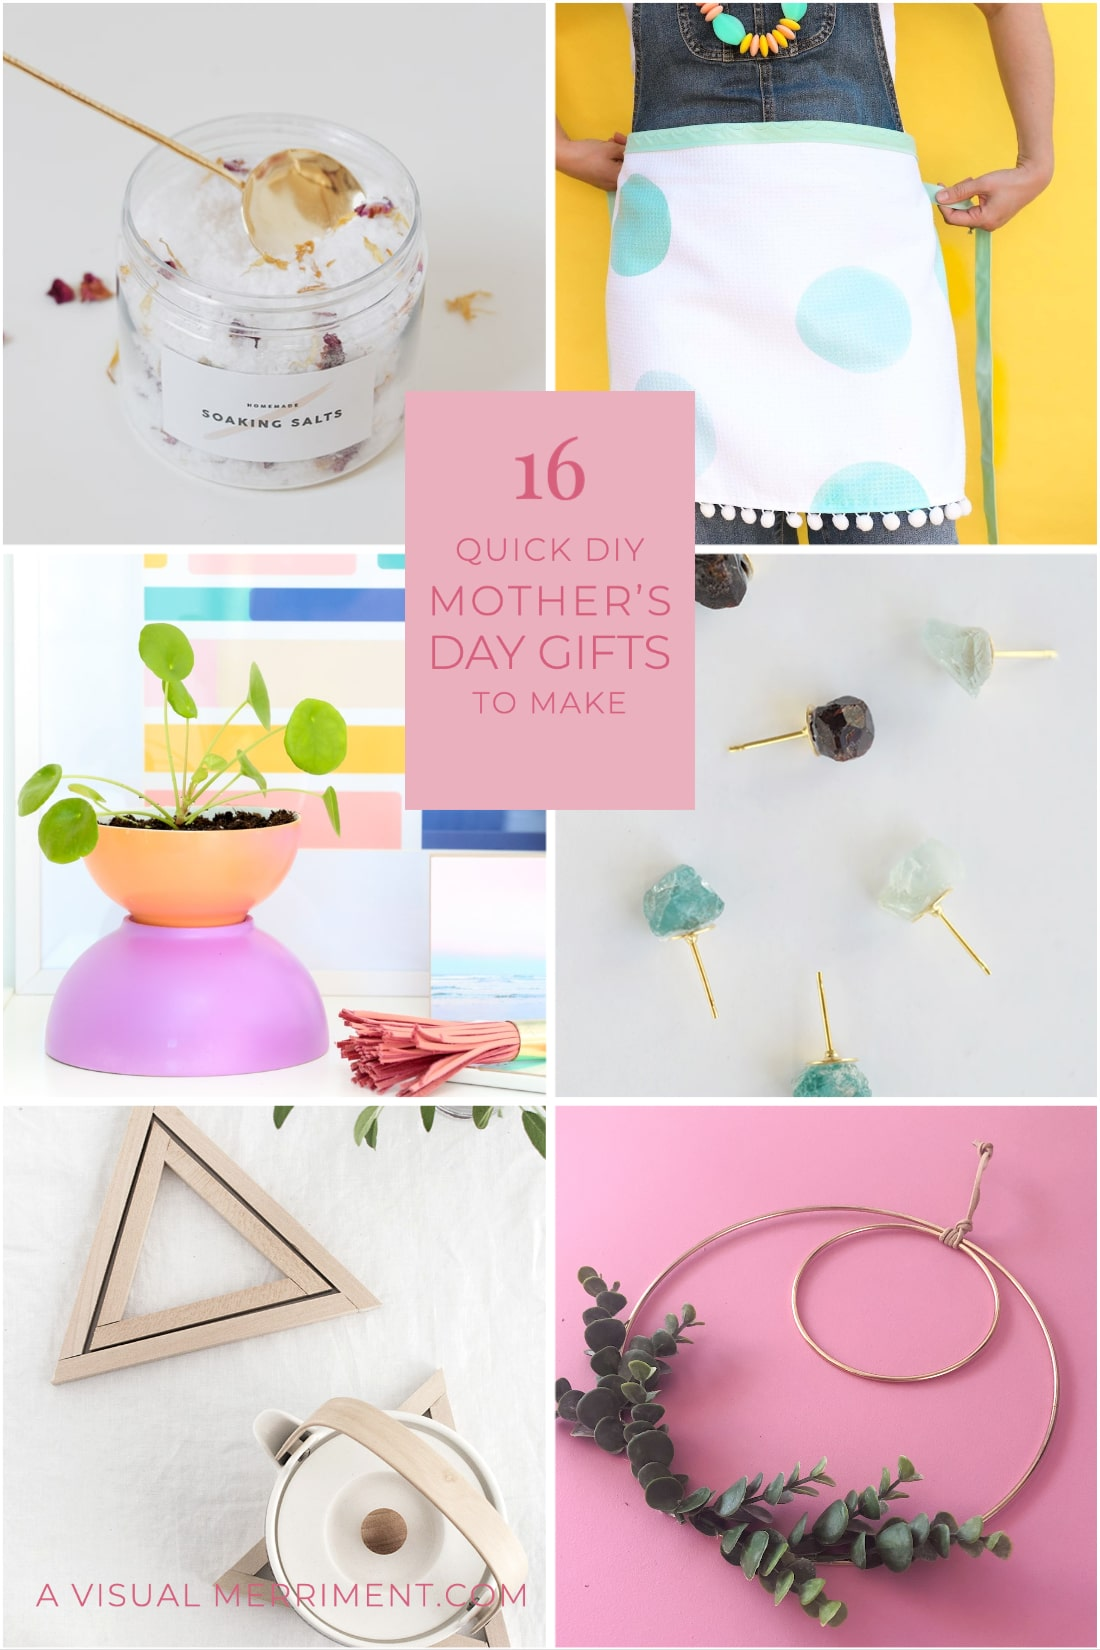 6 DIY gift ideas for mothers day